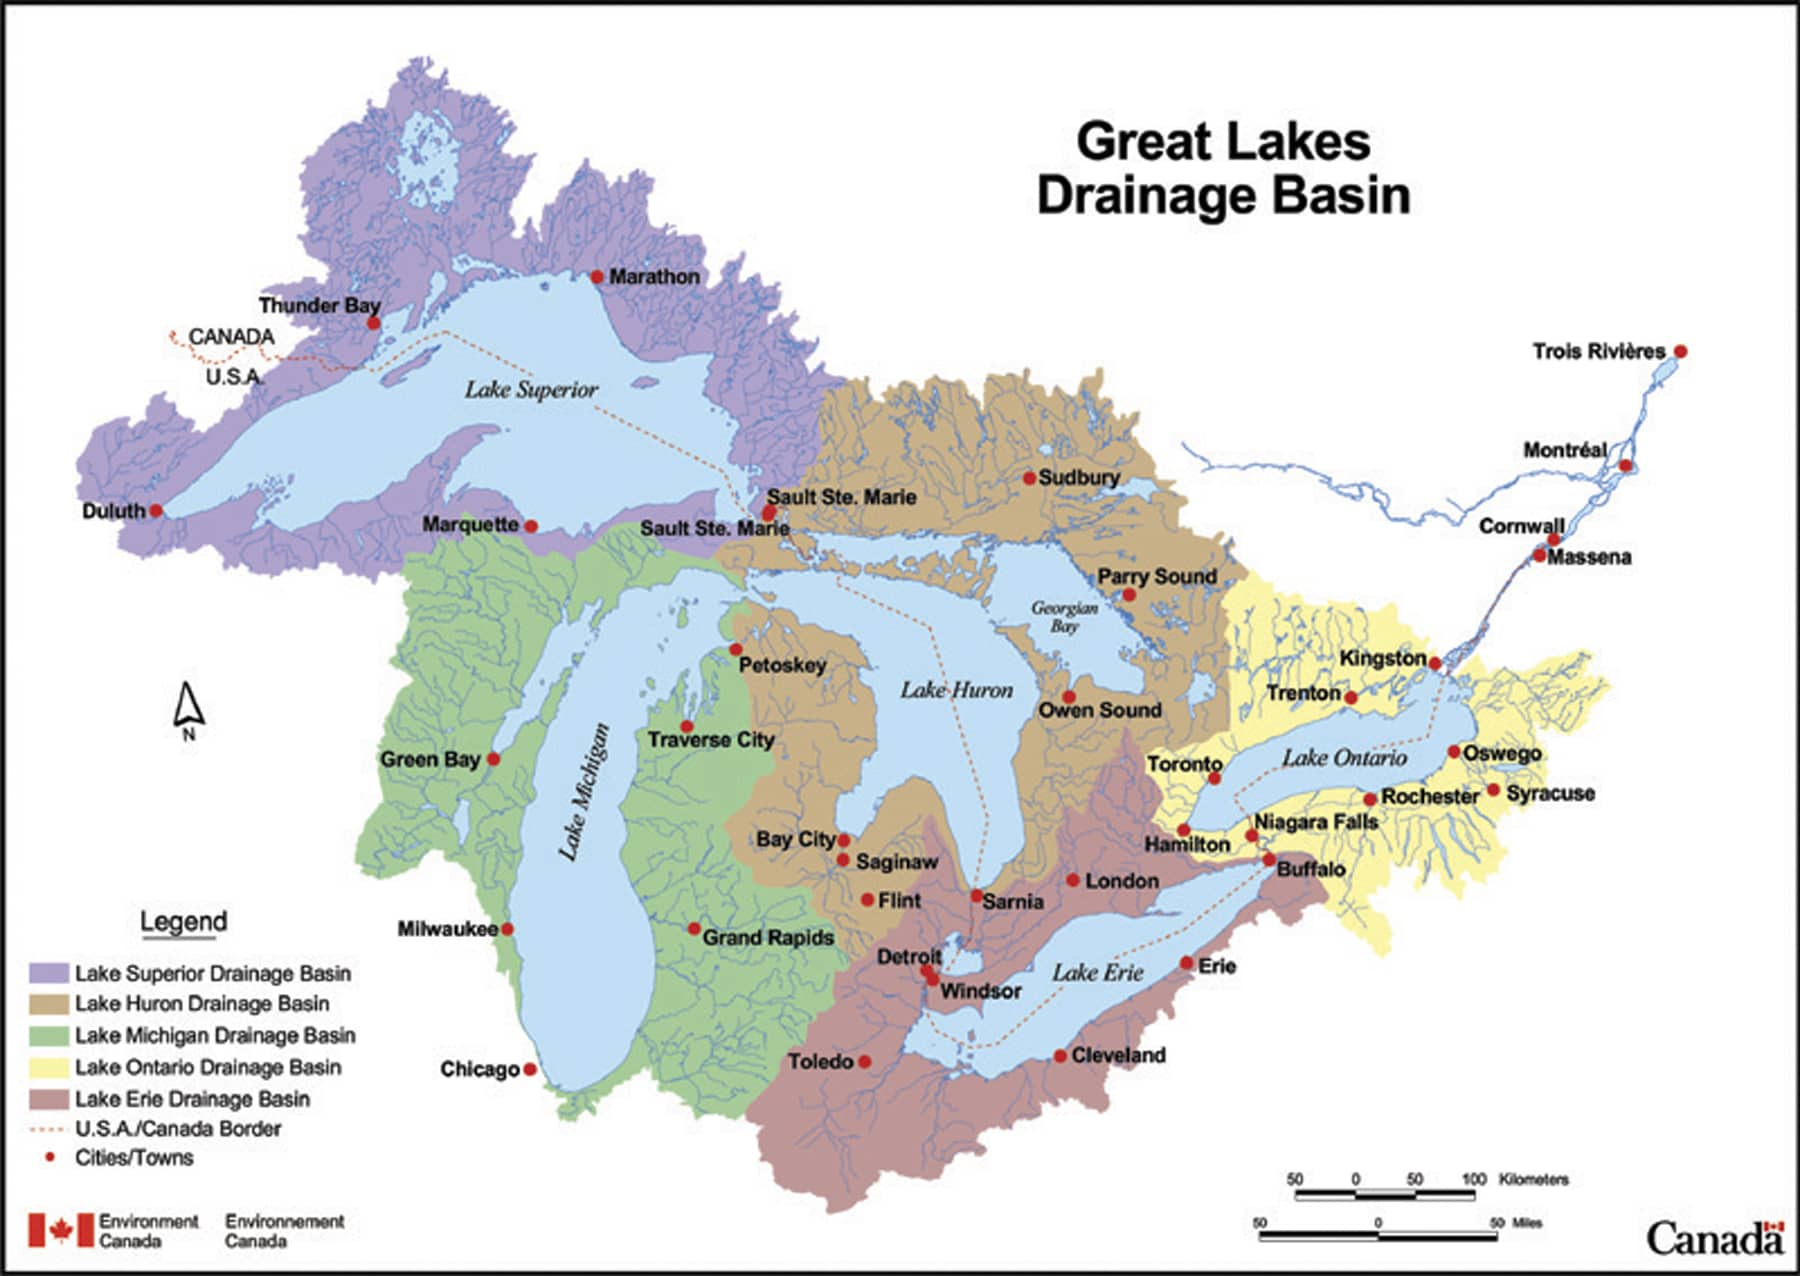 Facts About The Lakes